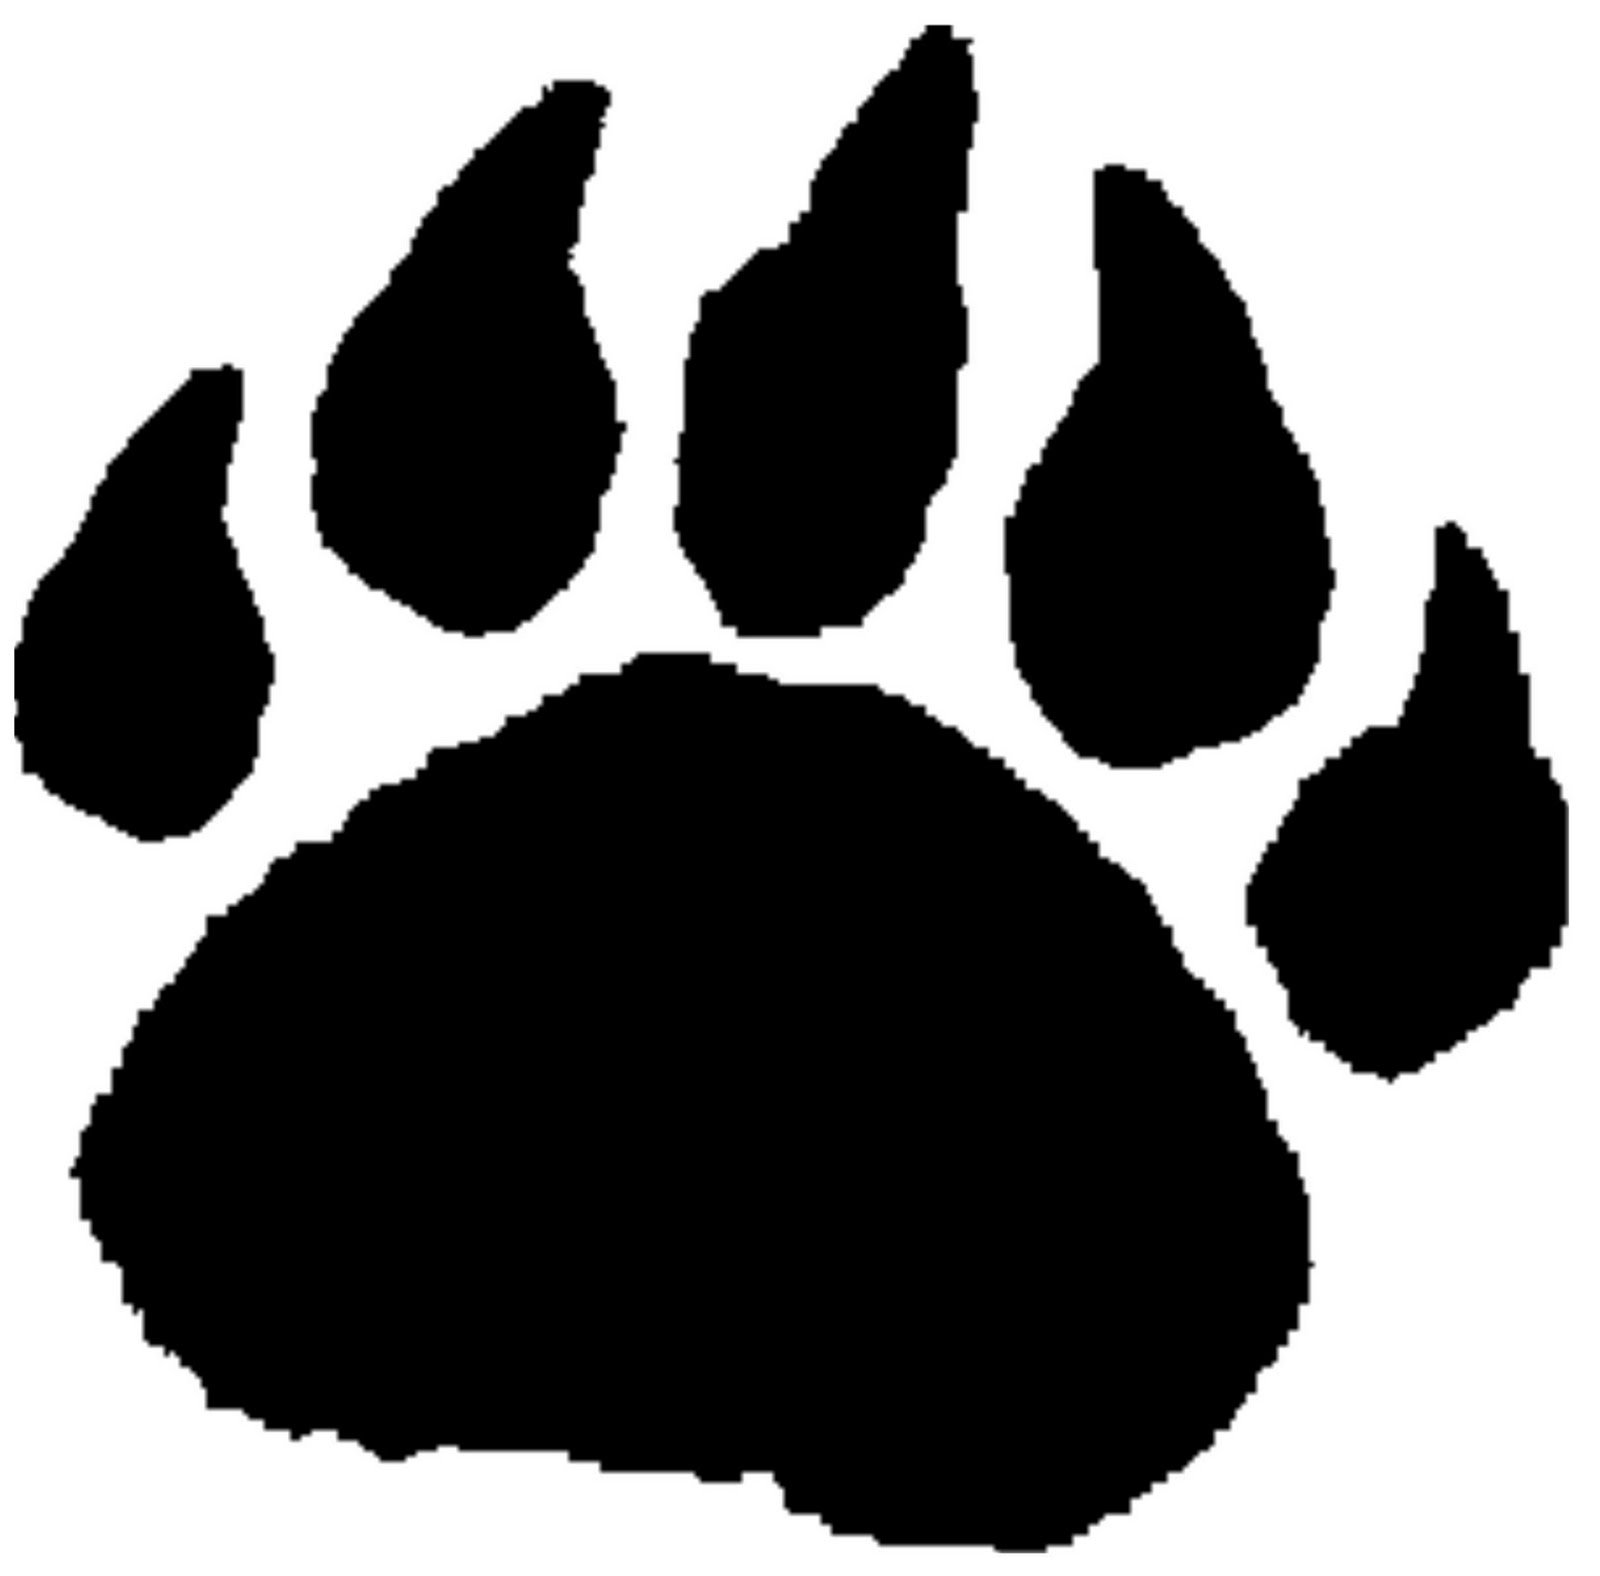 bear paw clipart transparent background